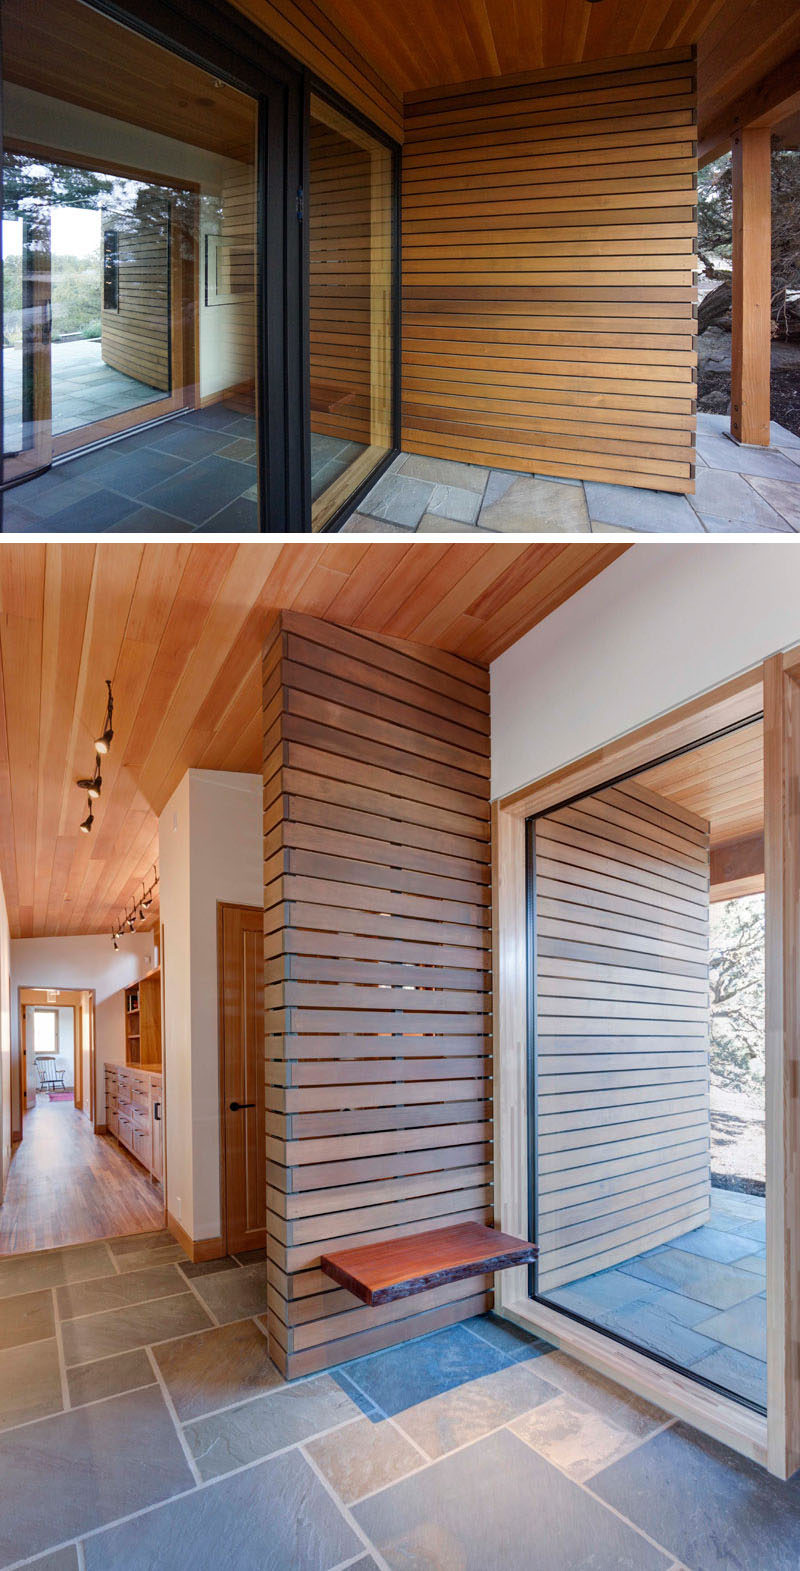 A curved entry wall escorts visitors into this home and widens to an expansive view of the valley beyond. A simple live edge wood slab serves as a bench for removing shoes upon entering the home. #Entryway #FrontDoor #Wood